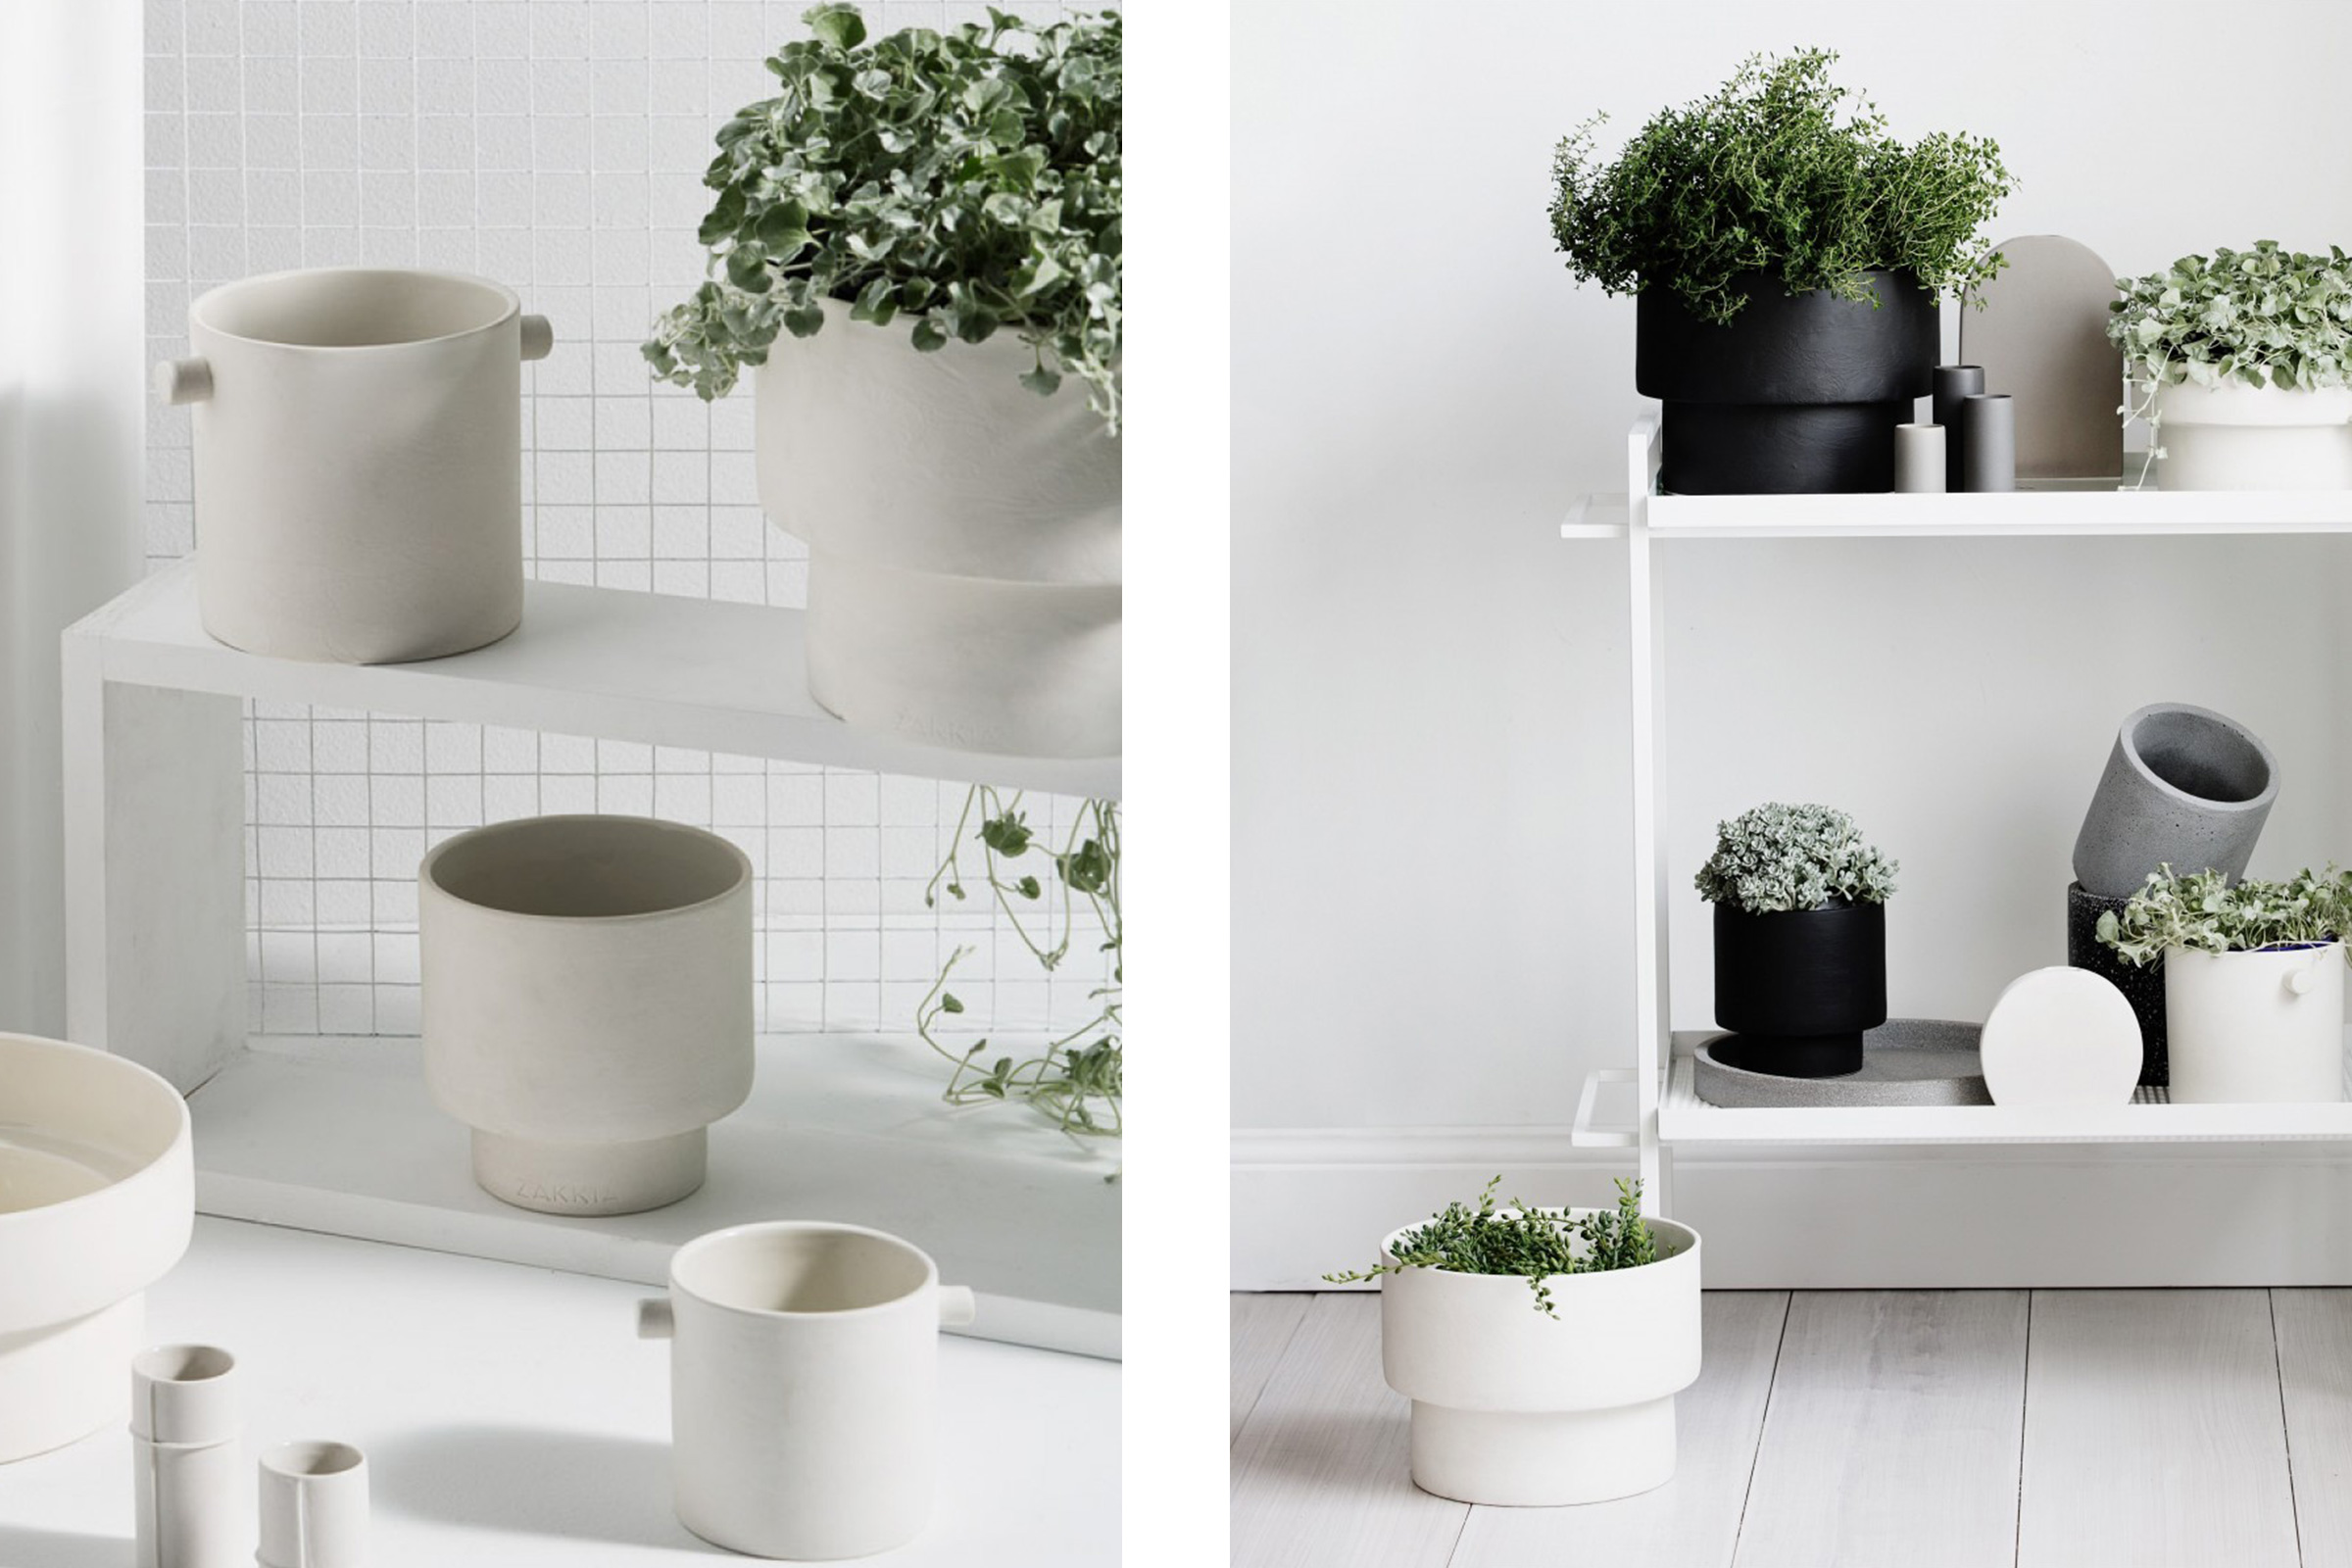 Home Gift Guide - Zakkia - Podium Pot